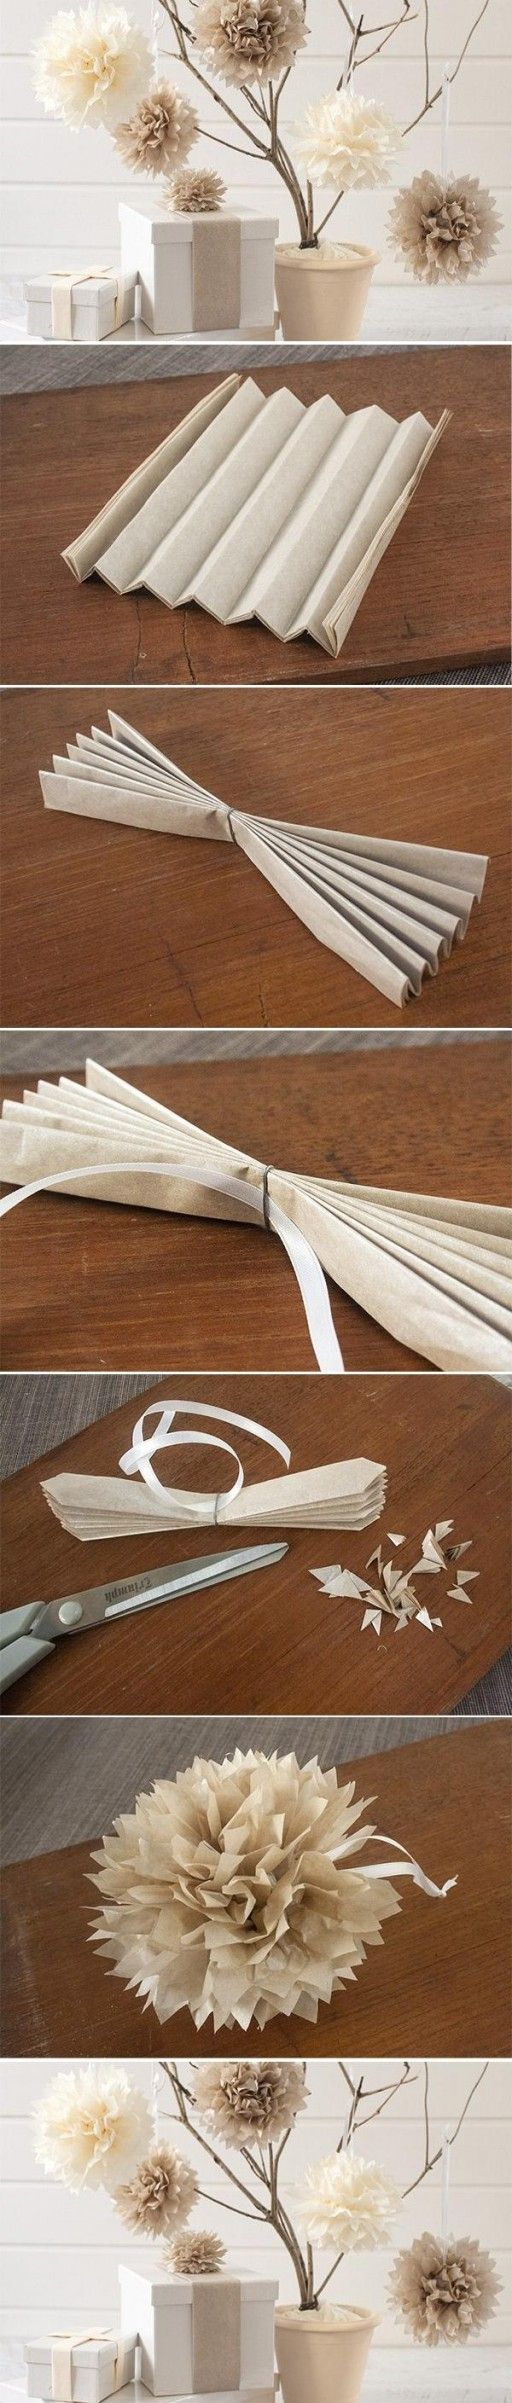 How to make Beautiful Paper Flower Ball step by step DIY tutorial instructions , How to, how to do, diy instructions, crafts, do it yourself